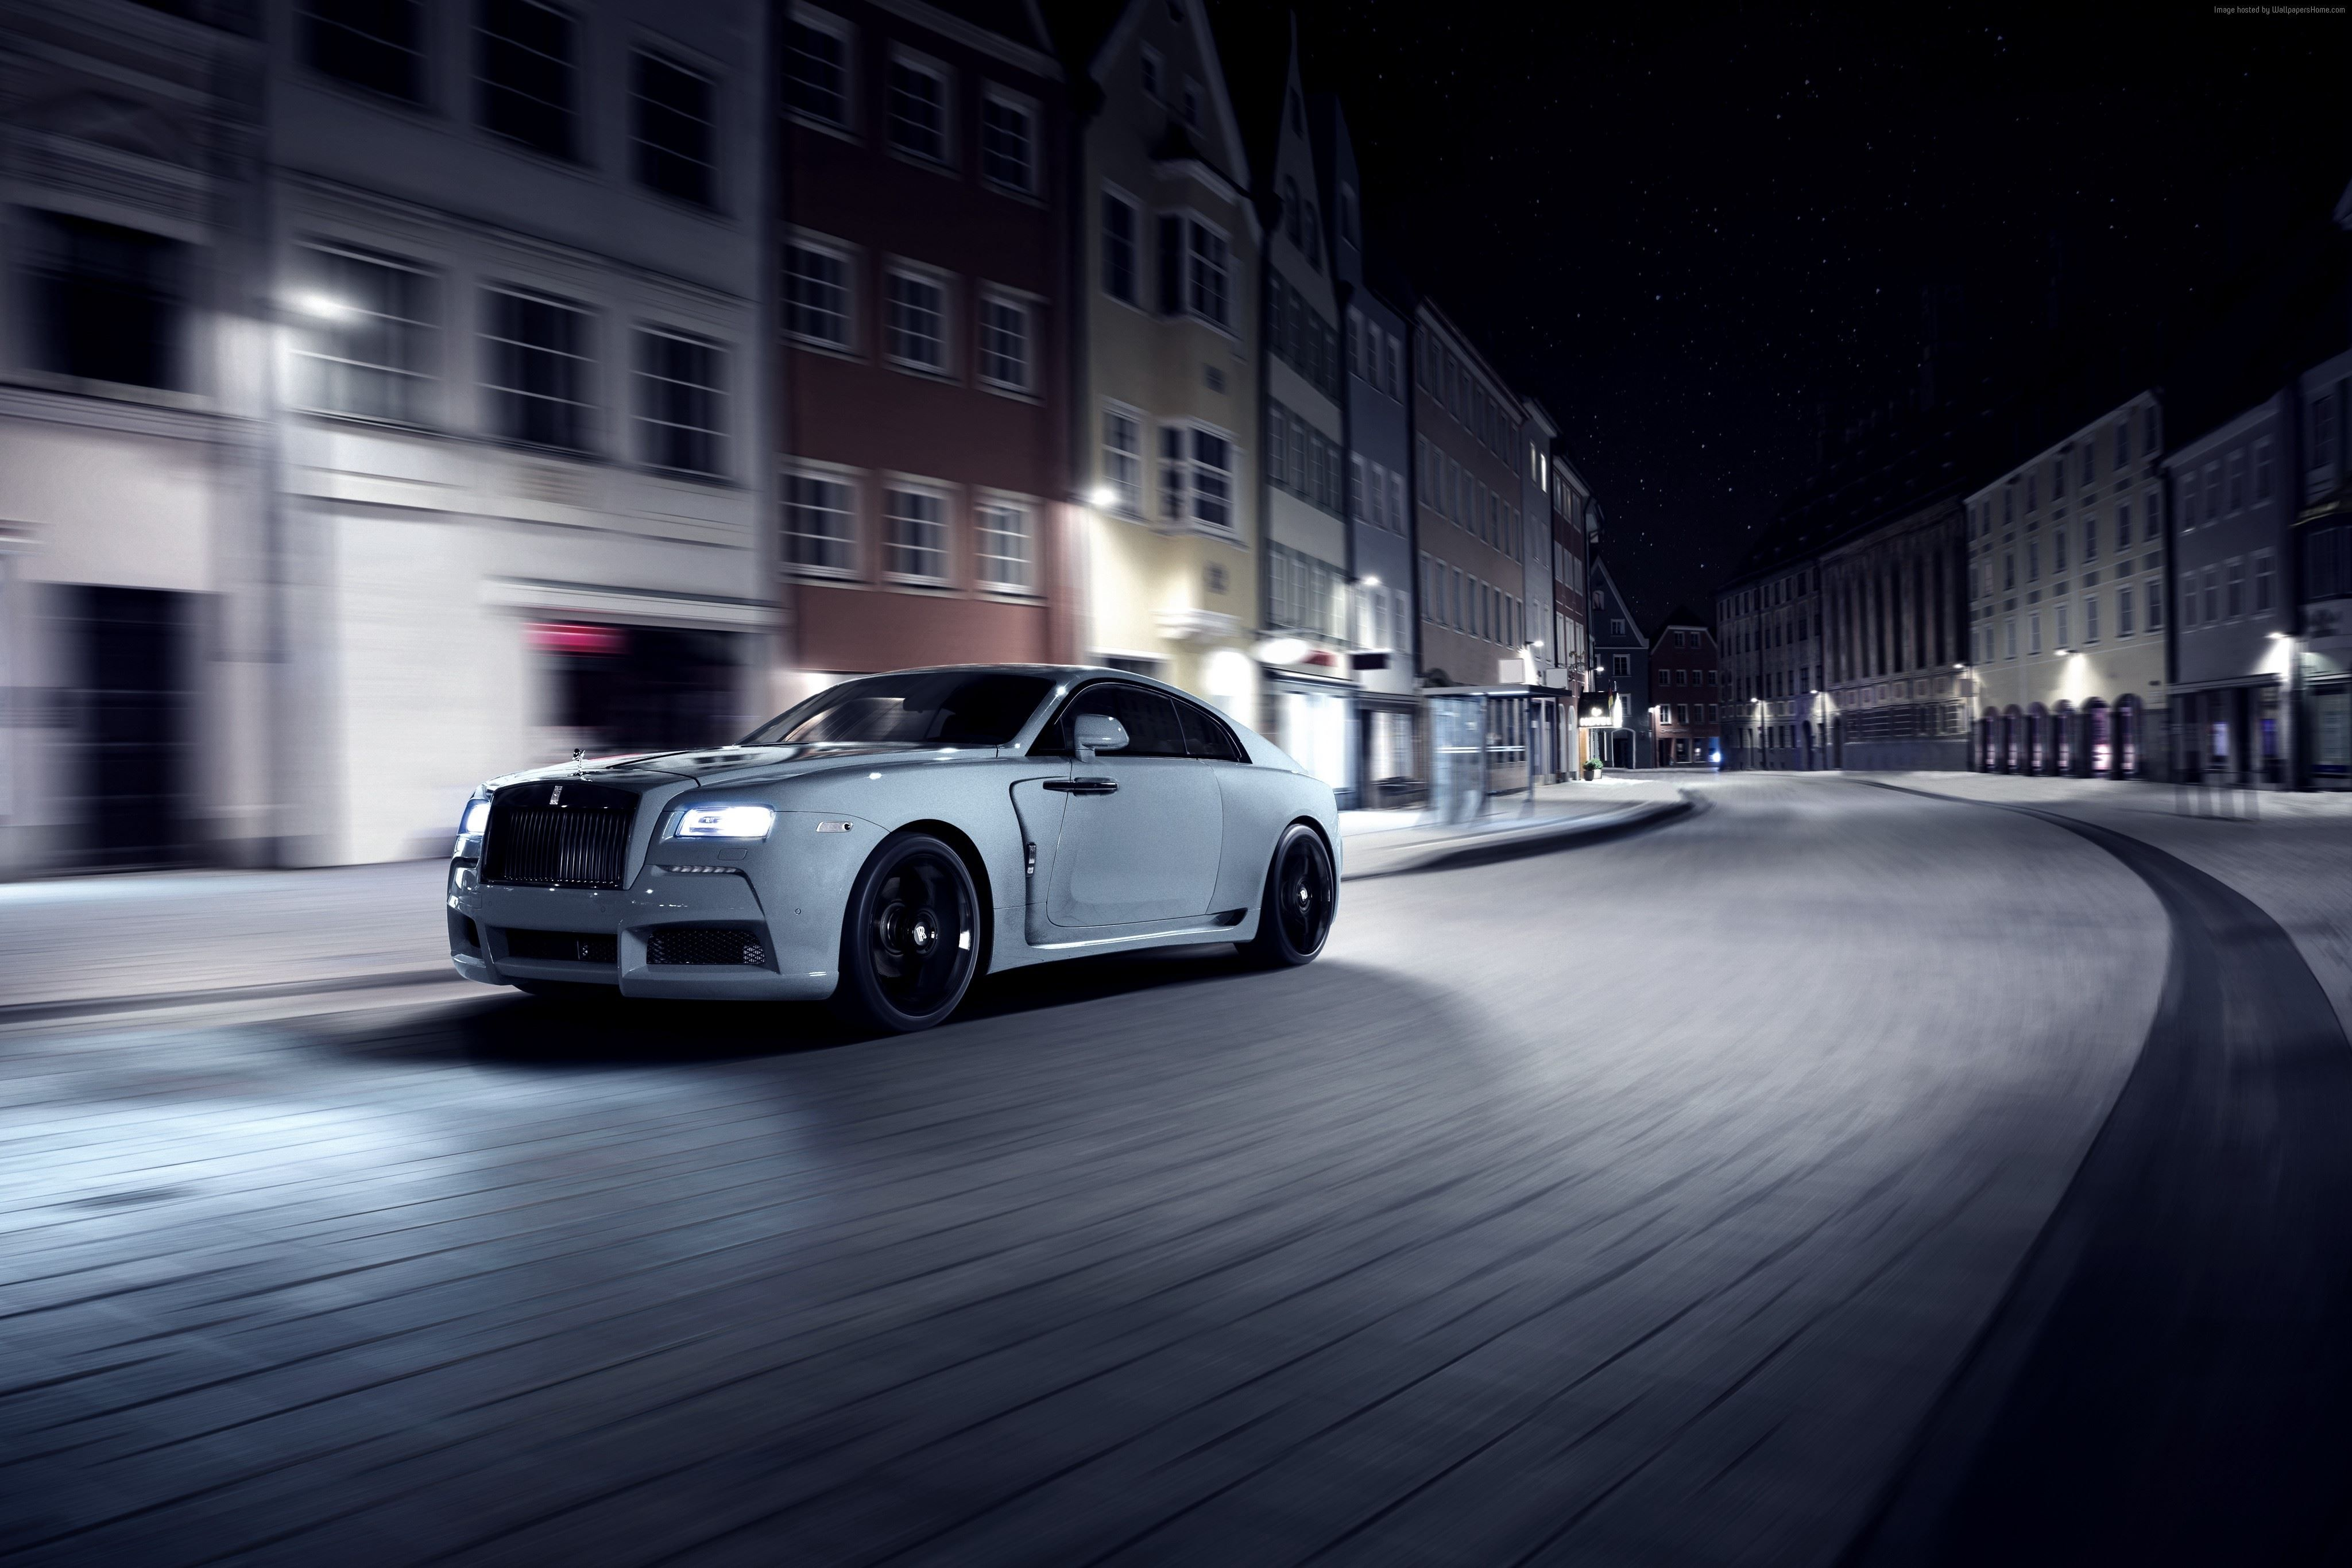 Spofec Rolls Royce Wraith, Overdose, silver, luxury cars – Classic Cars & Bikes …